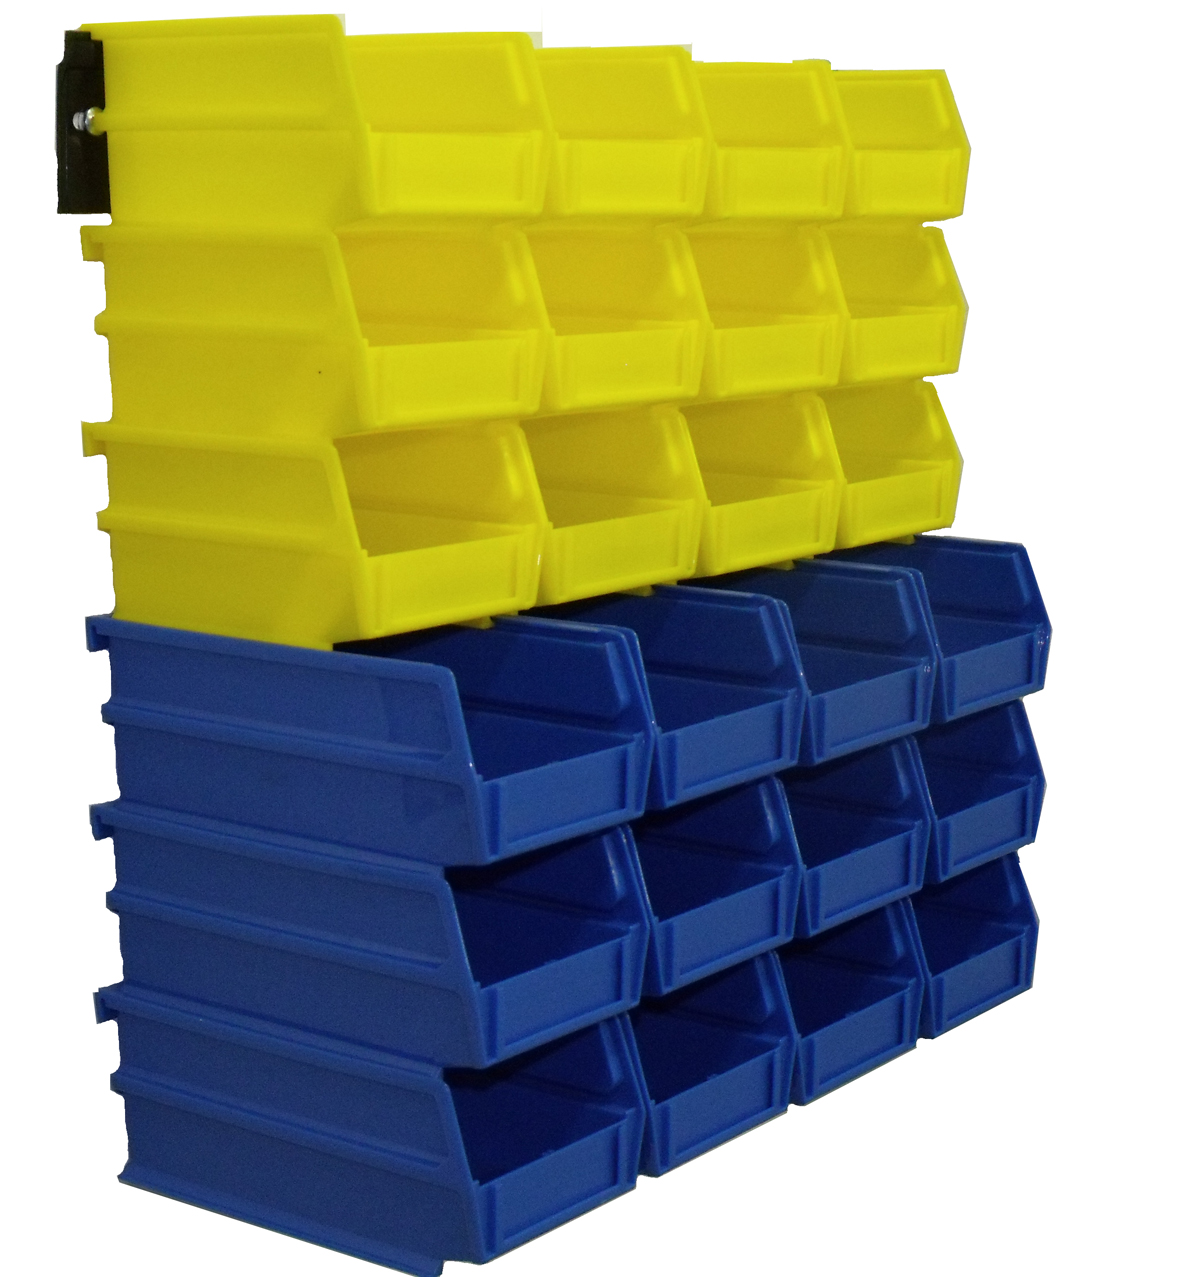 26 Pc Wall Storage Unit with (12) 5-3/8L x 4-1/8W x 3H YEL Bins & (12) 7-3/8L x 4-1/8W x 3H Blue Bins, 24 CT, Wall Mount Rails 8